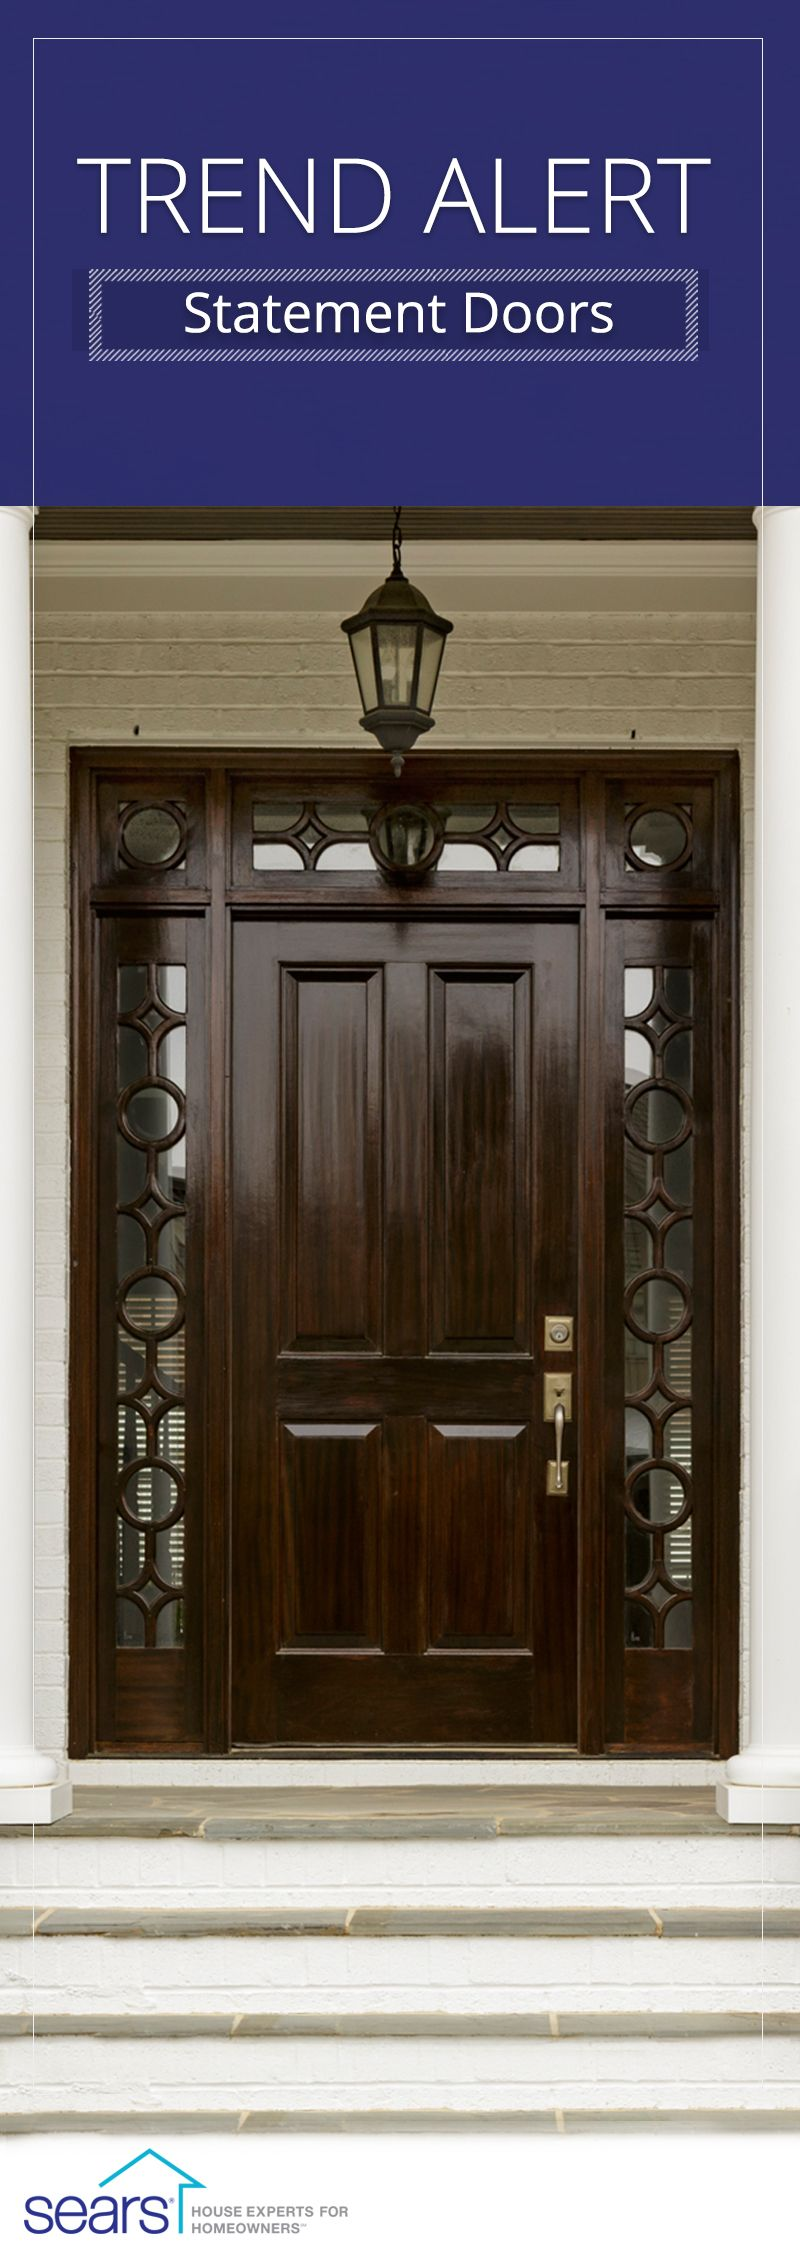 Trend Alert Statement Doors Give Your House An